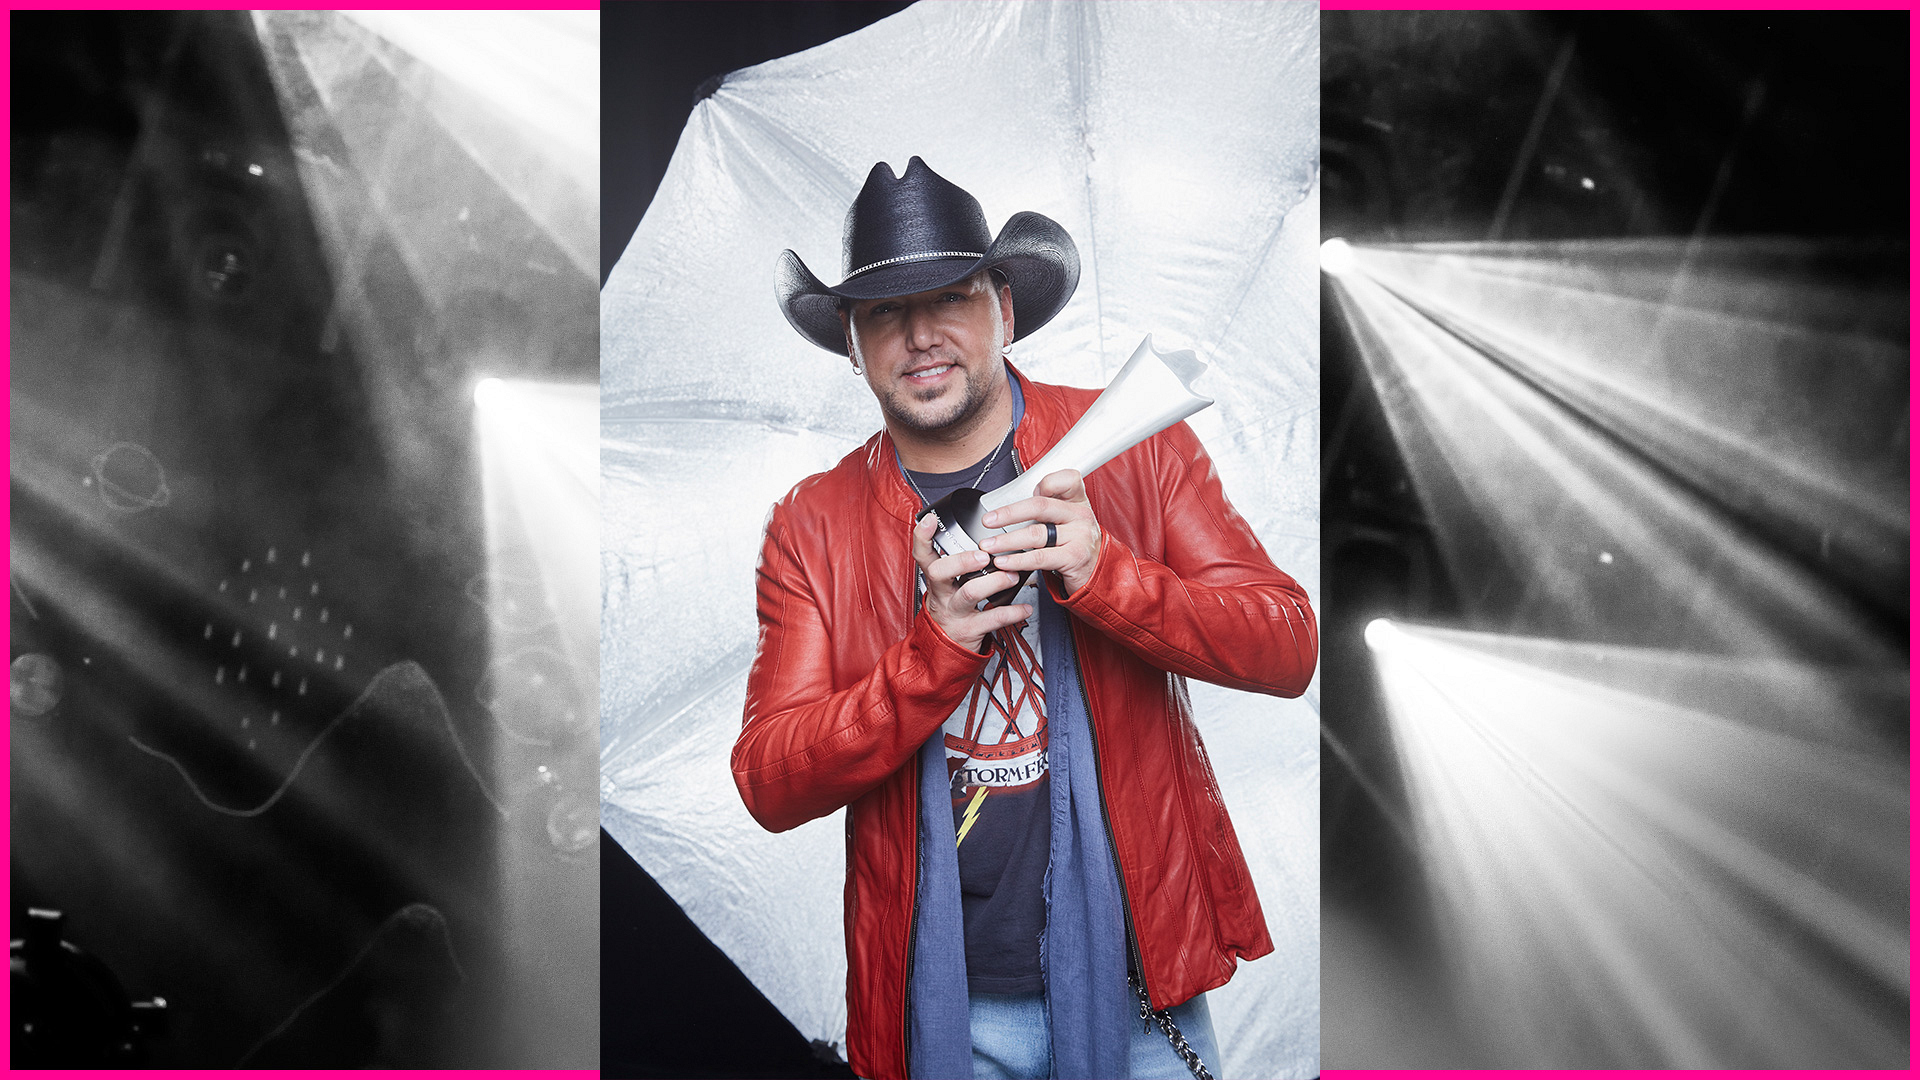 Jason Aldean celebrates his Entertainer Of The Year win with a gracious smile.